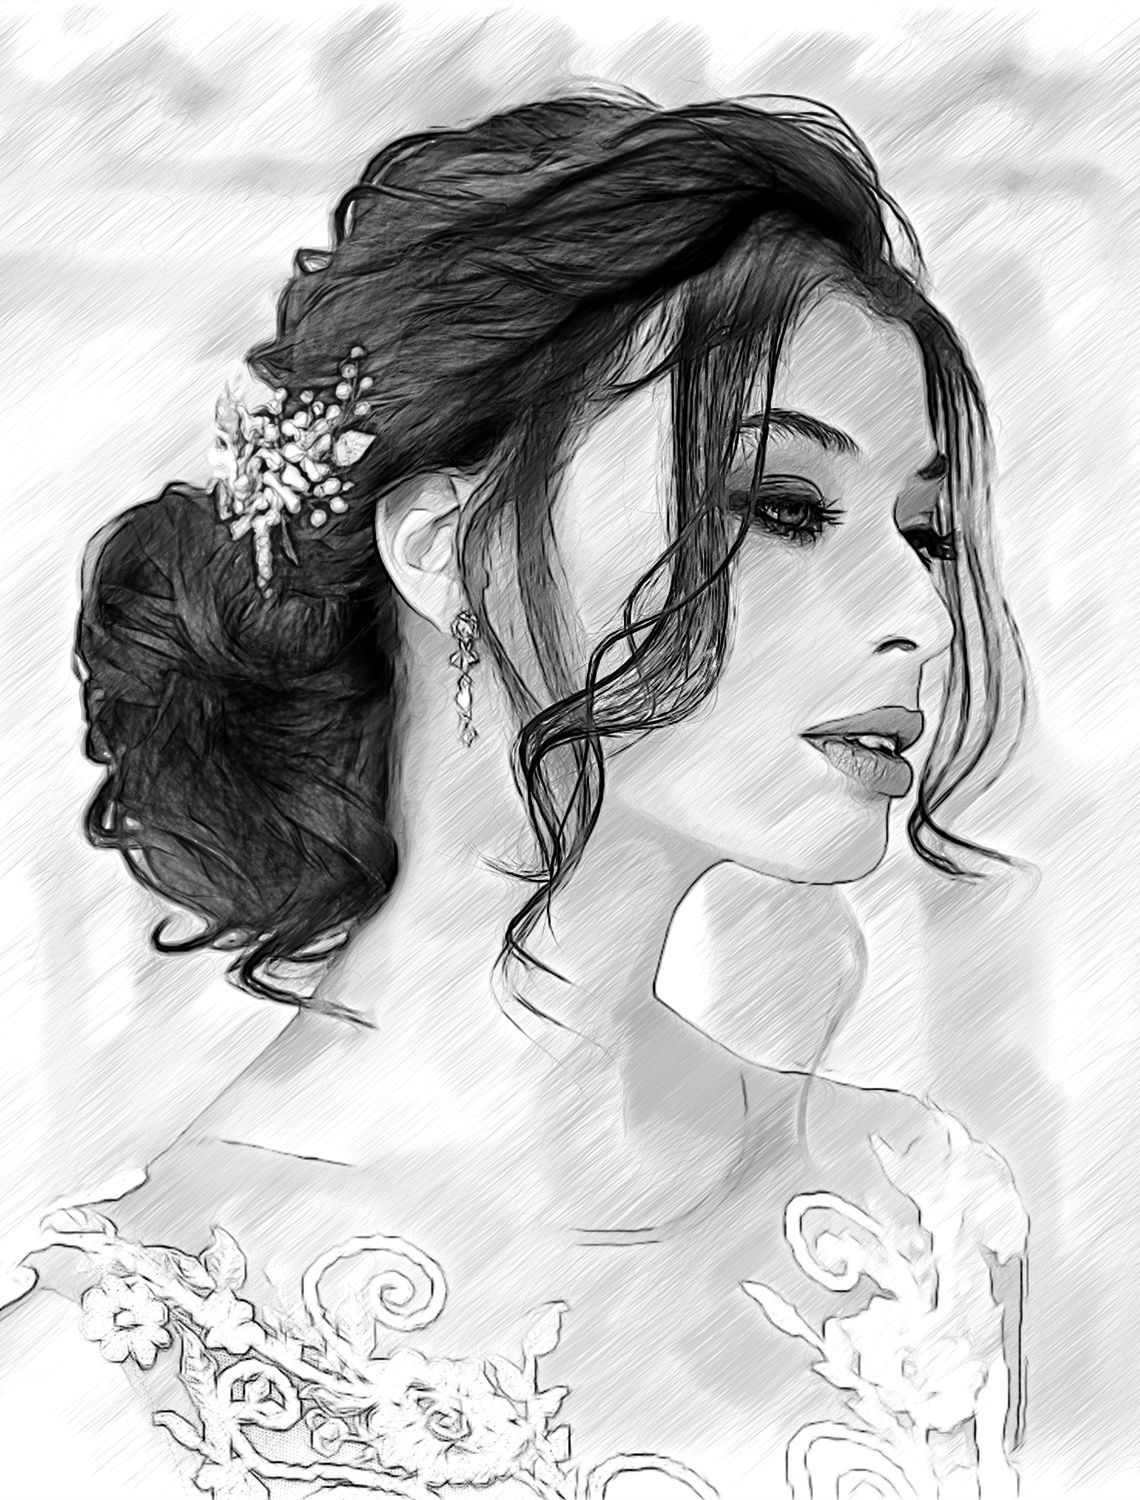 Akvis sketch converts photos into pencil sketches you can evaluate the software during the 10 day trial period akvis akvissketch beautifulbride bride